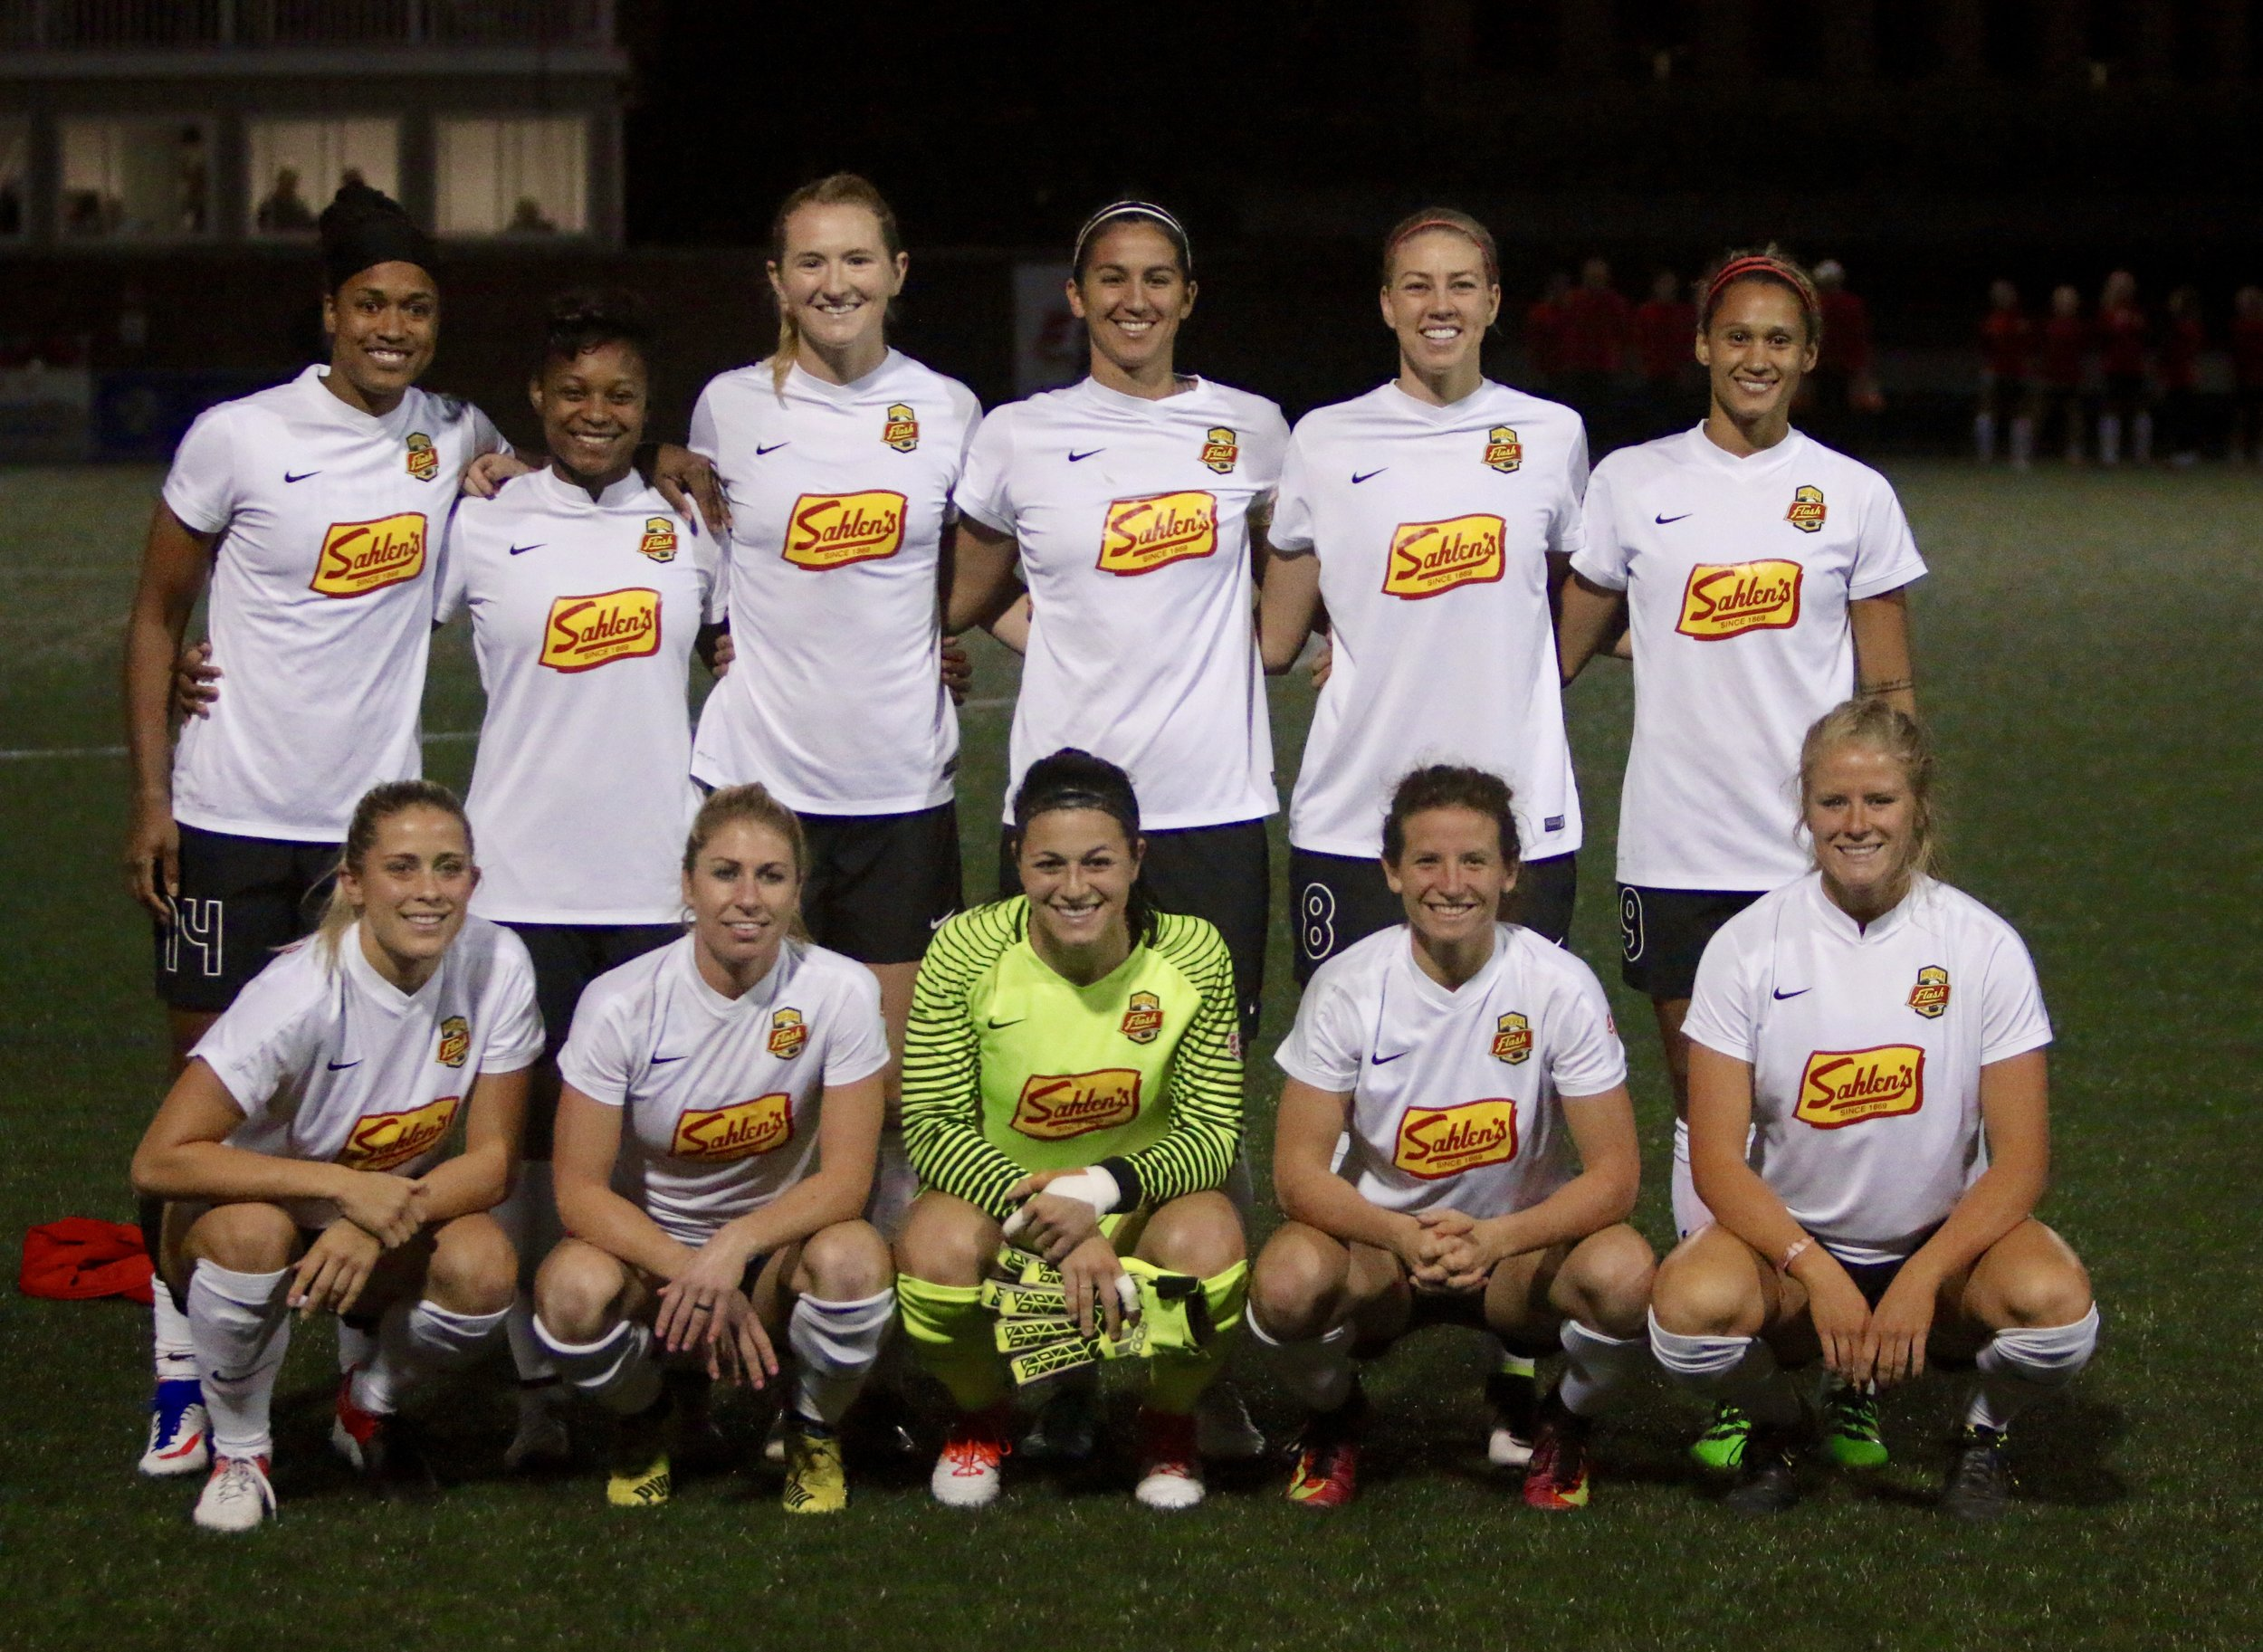 Your 2016 NWSL Champions, the former WNY Flash and future North Carolina Courage